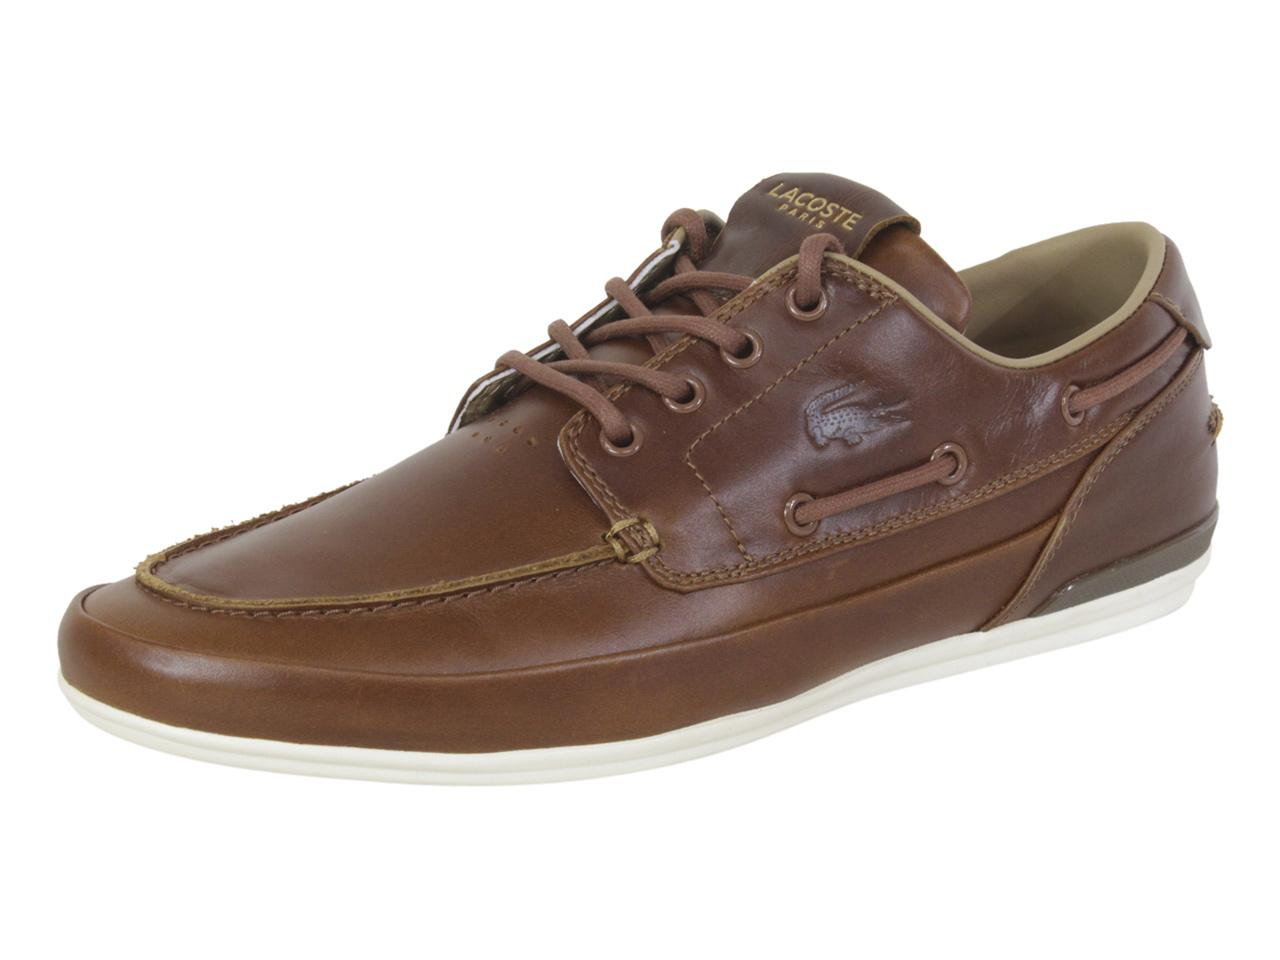 Marina-119 Sneakers Boat Shoes